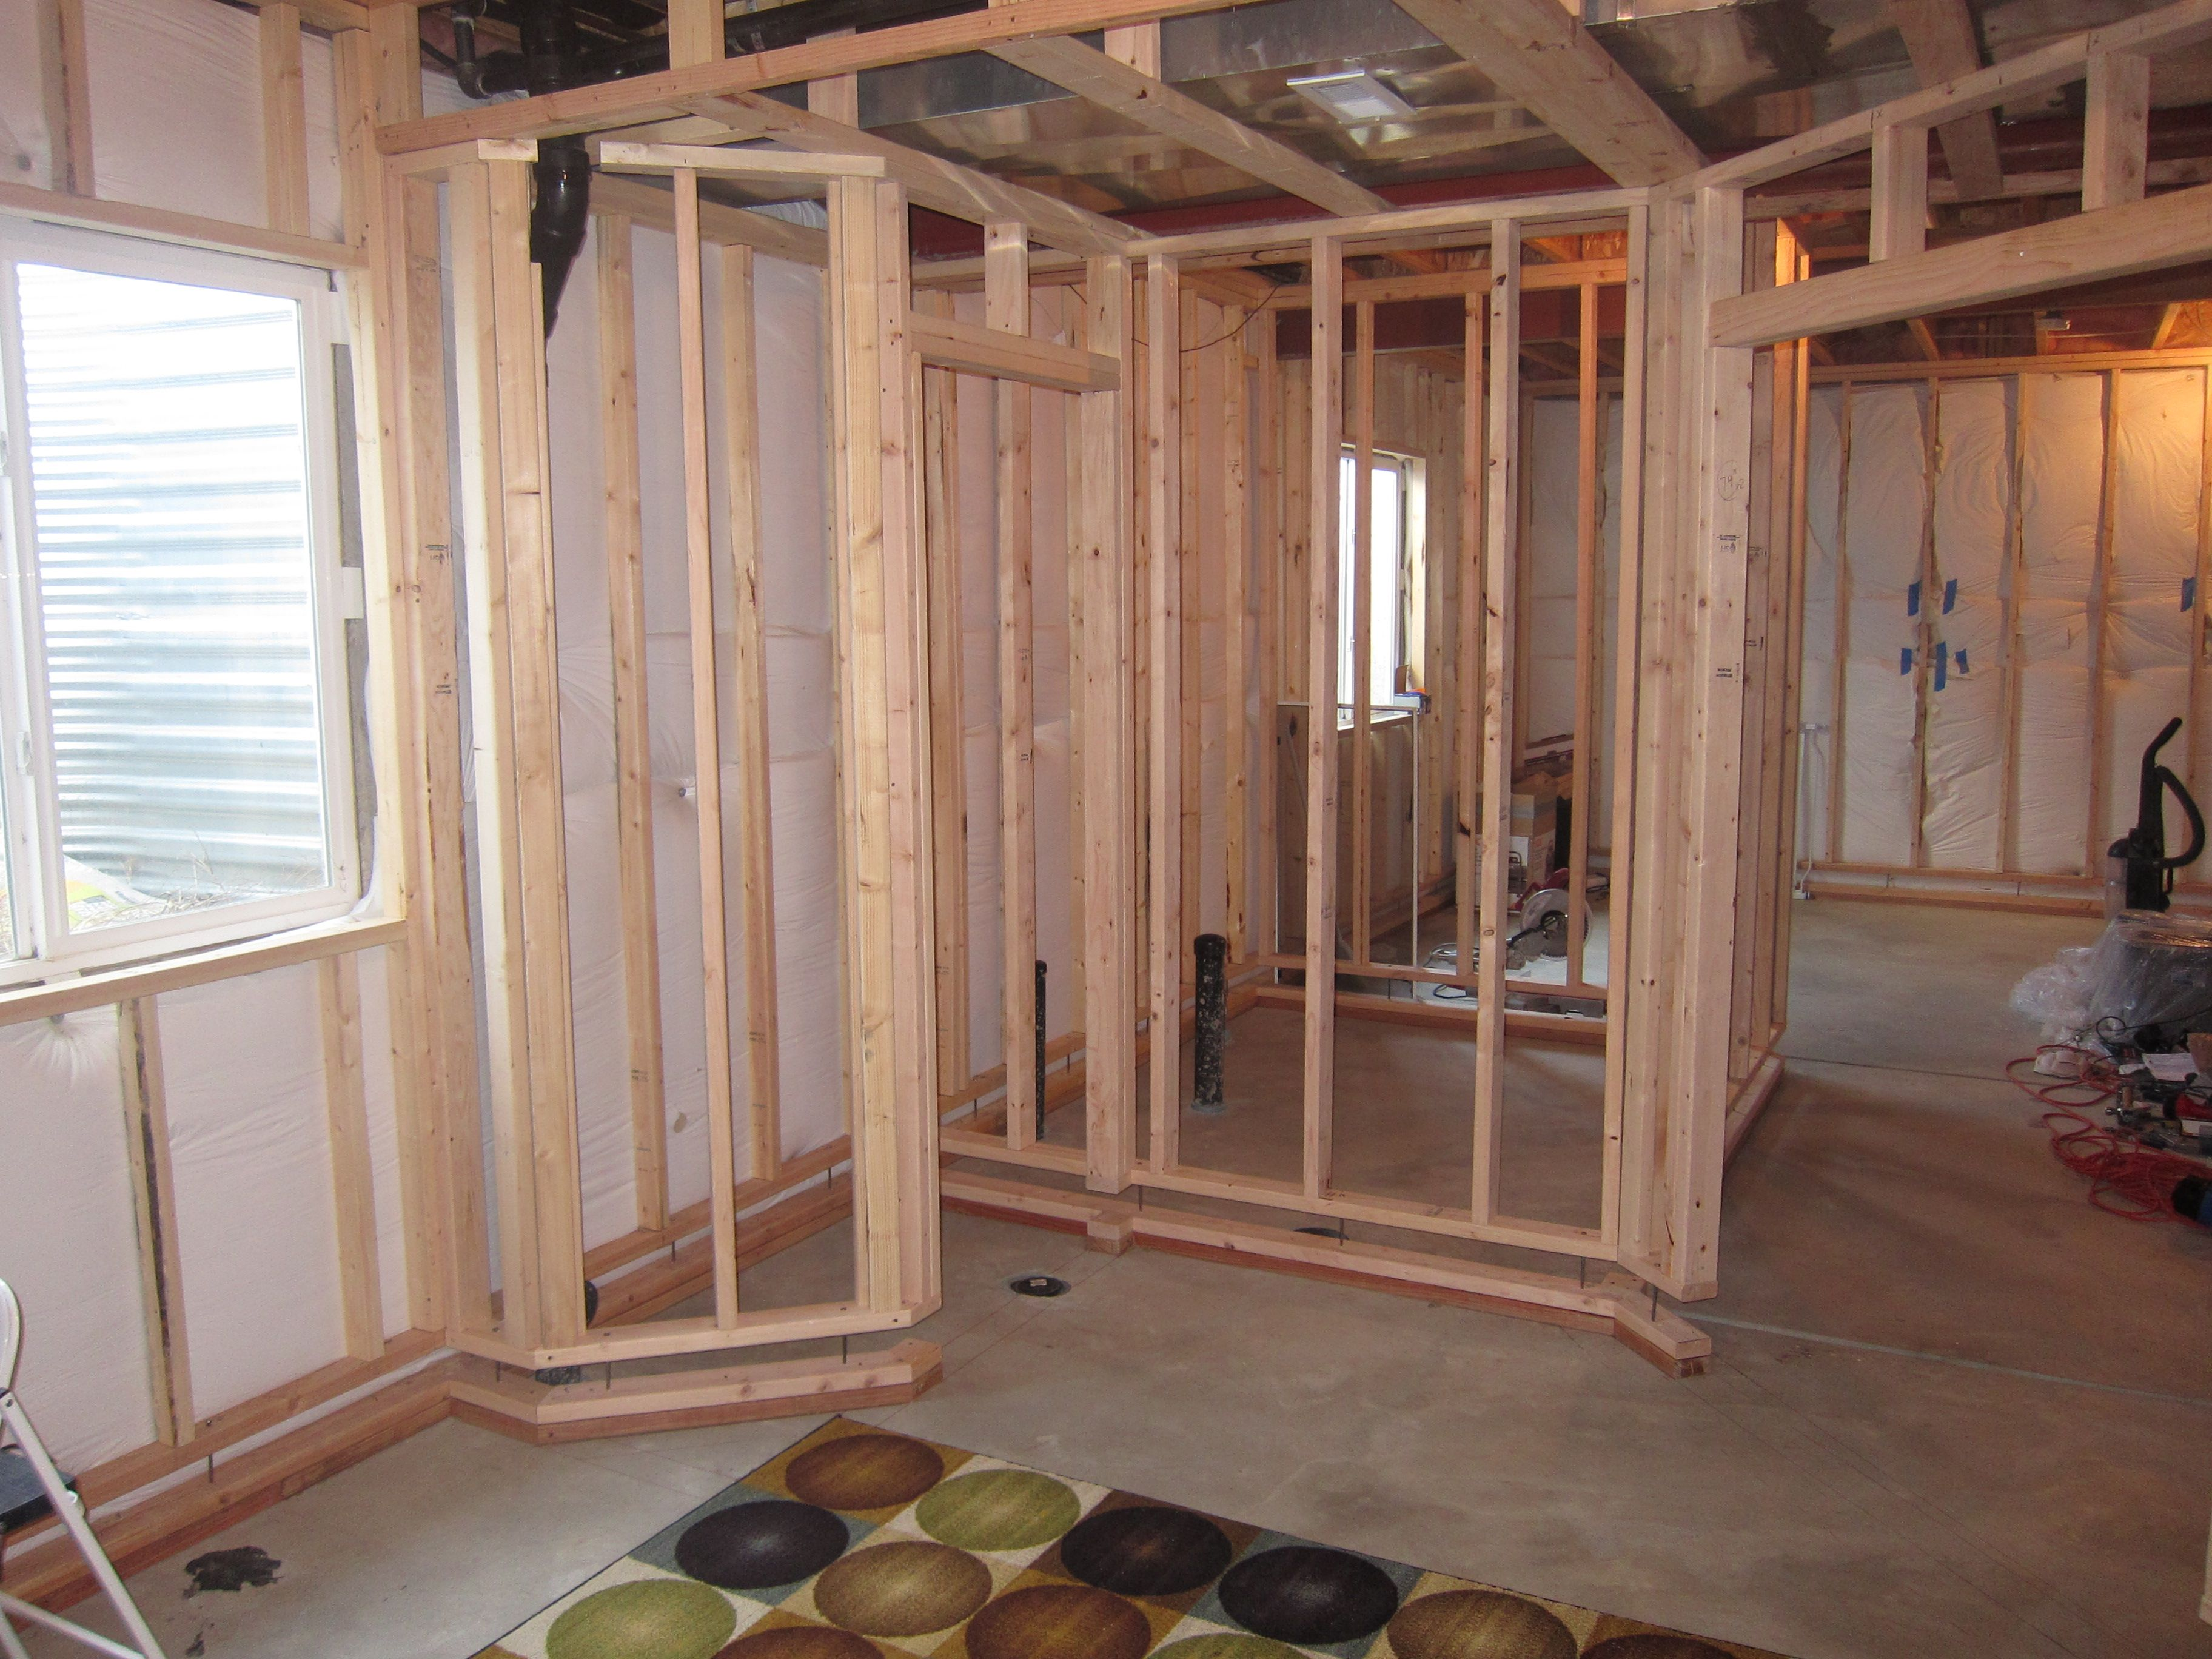 Before And After Pictures Finishing A Basement Bedroom Framing Basement Walls Framing A Basement Basement Bedrooms